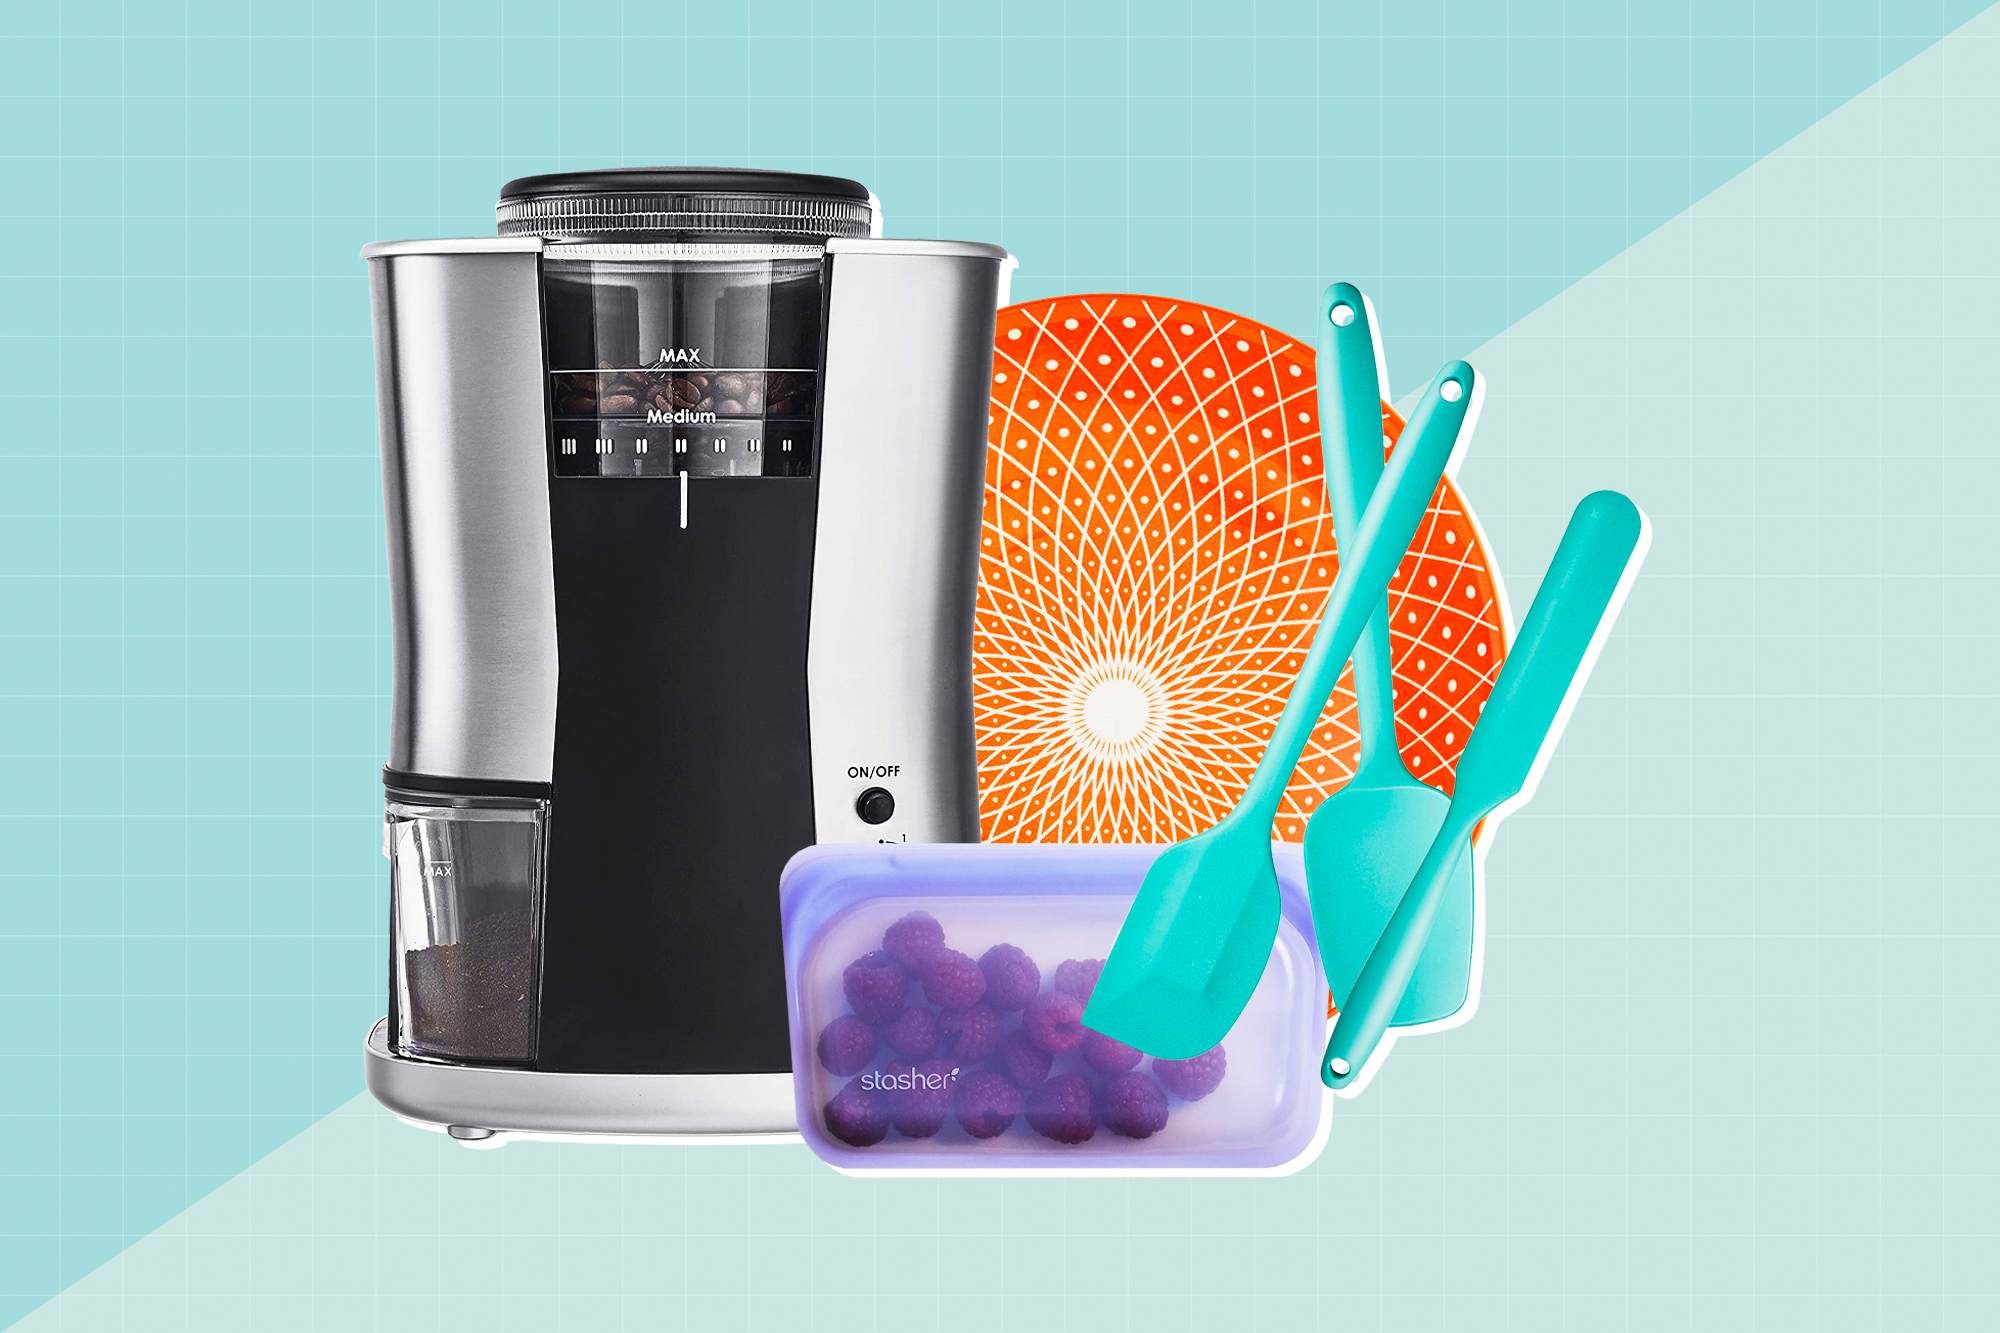 A collection of home goods from amazon on a designed background